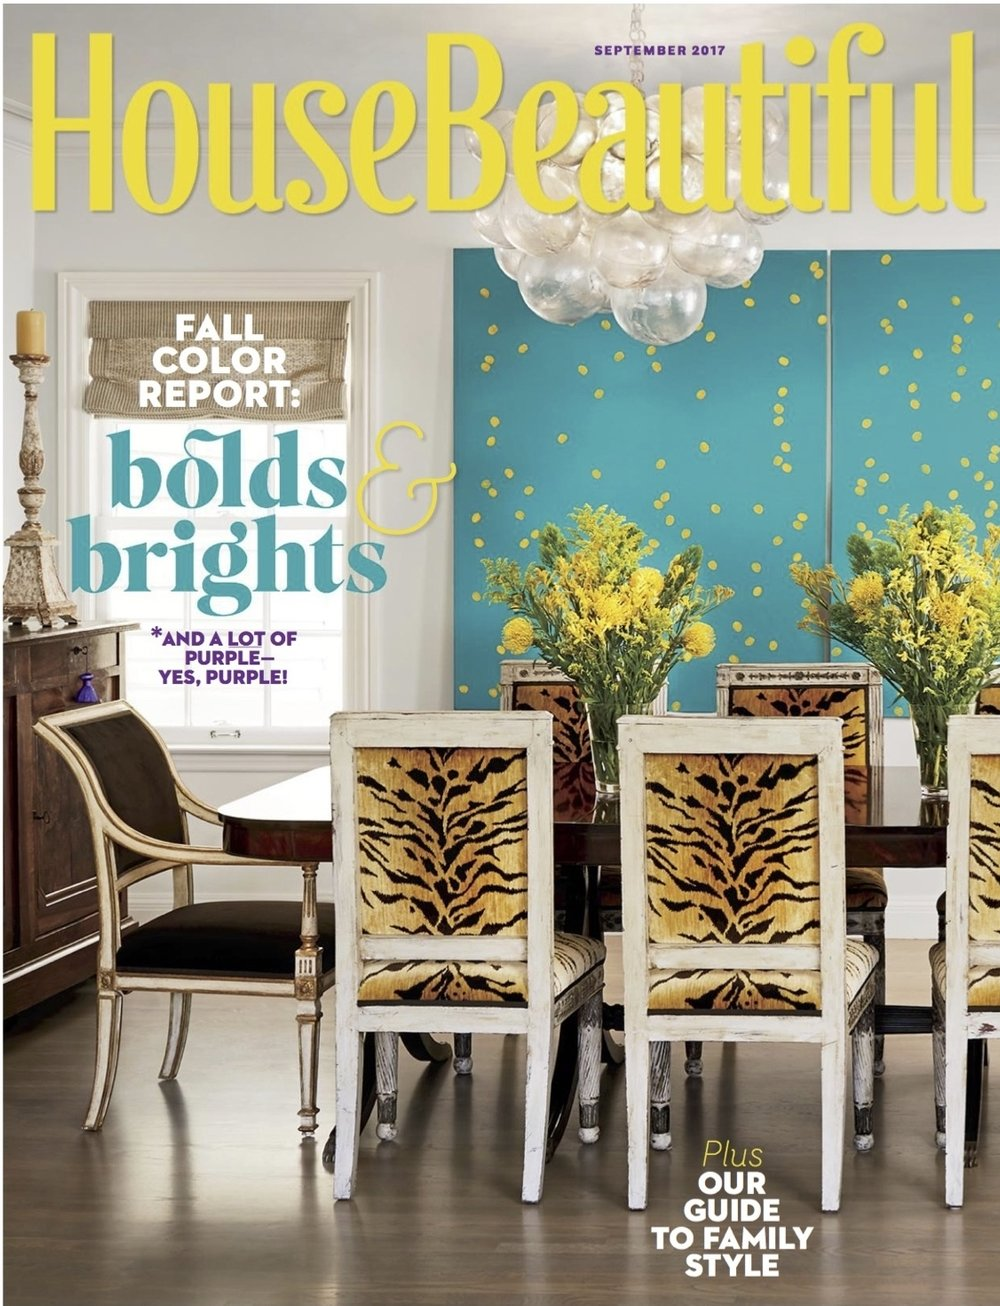 House Beautiful Magazine September 2017 issue